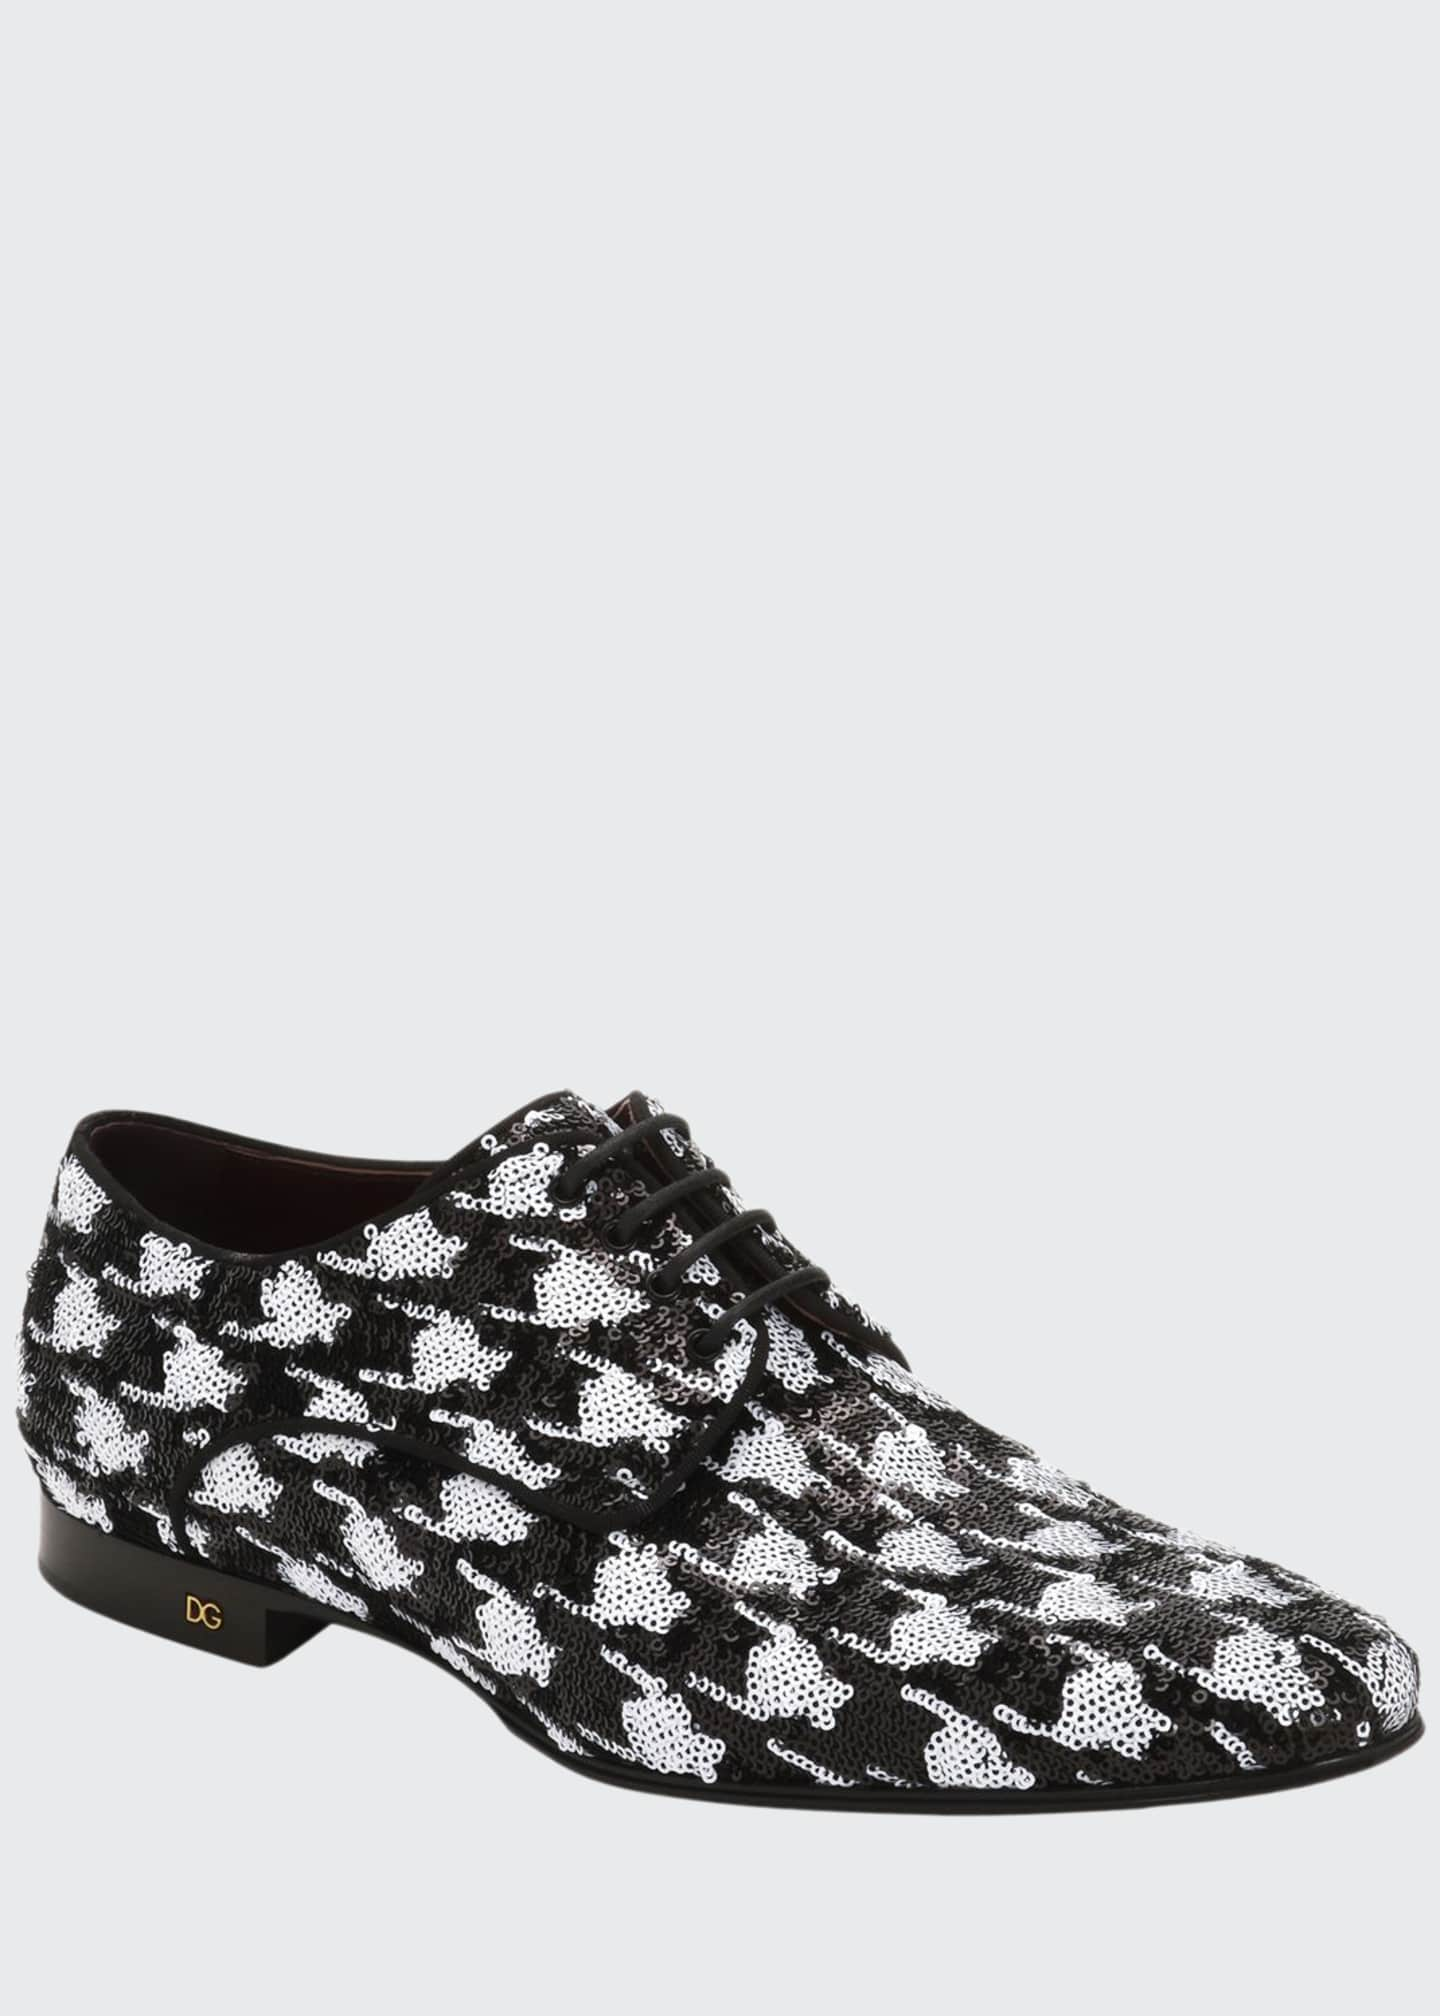 Image 1 of 3: Men's Two-Tone Patterned Sequin Derby Shoes